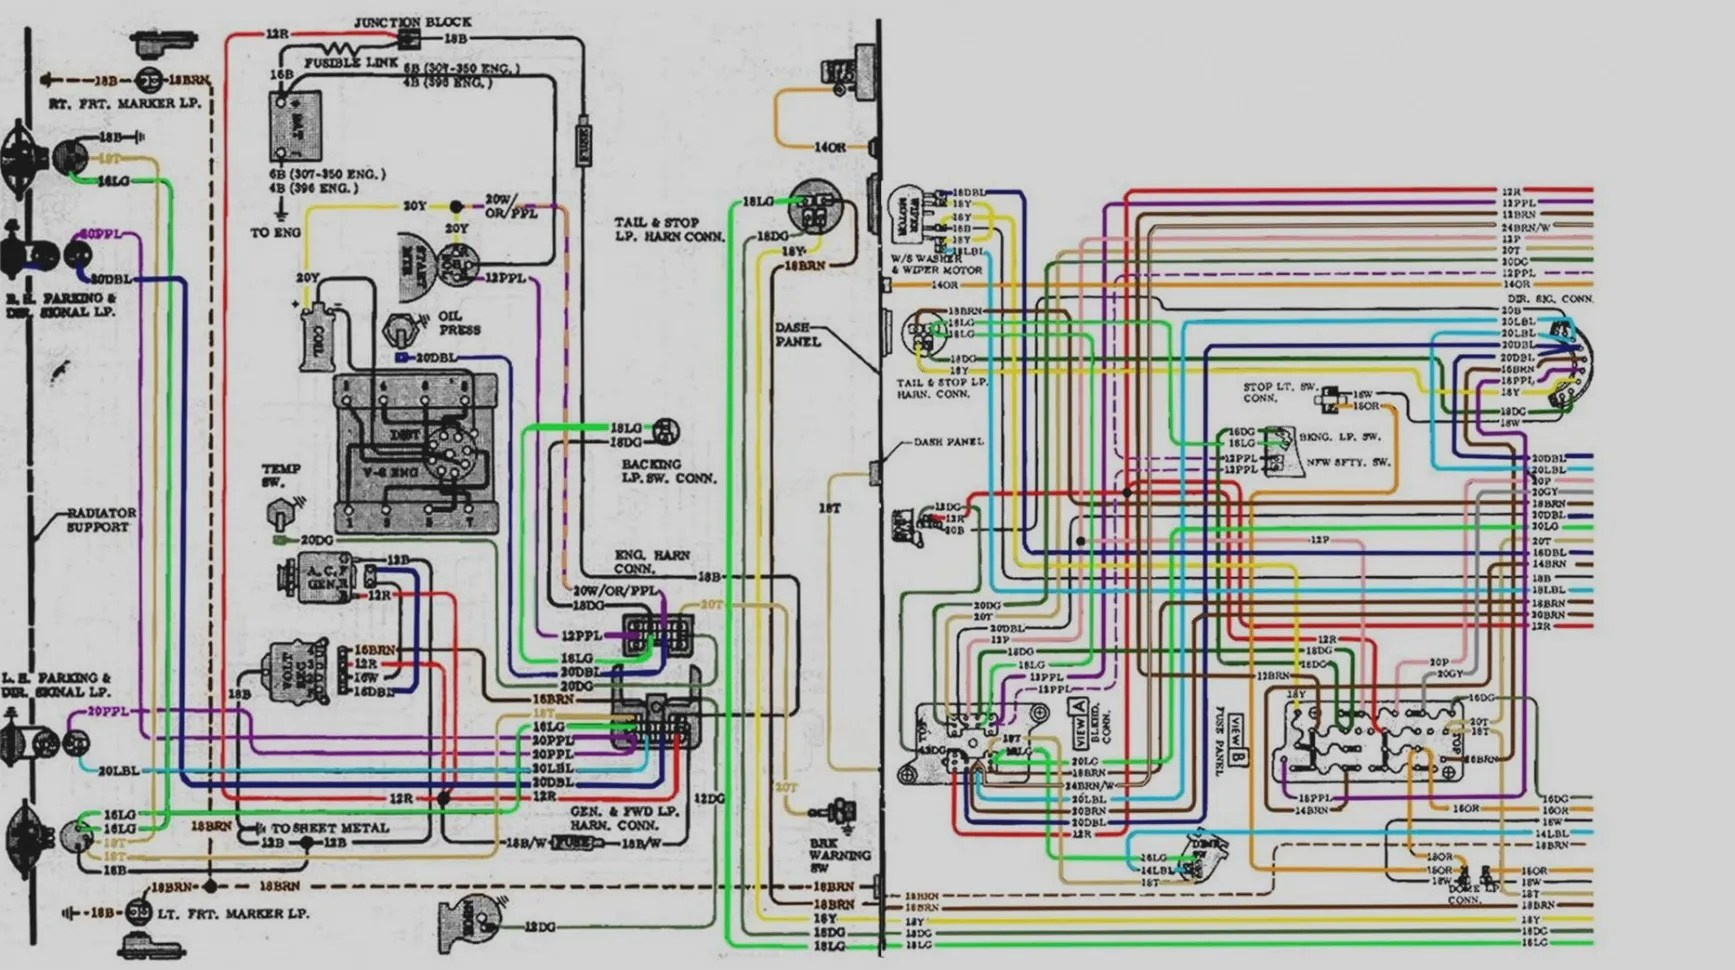 hight resolution of wiring diagram 1972 chevrolet nova wiring diagrams konsult72 chevy wiring diagram wiring diagram schematic wiring diagram